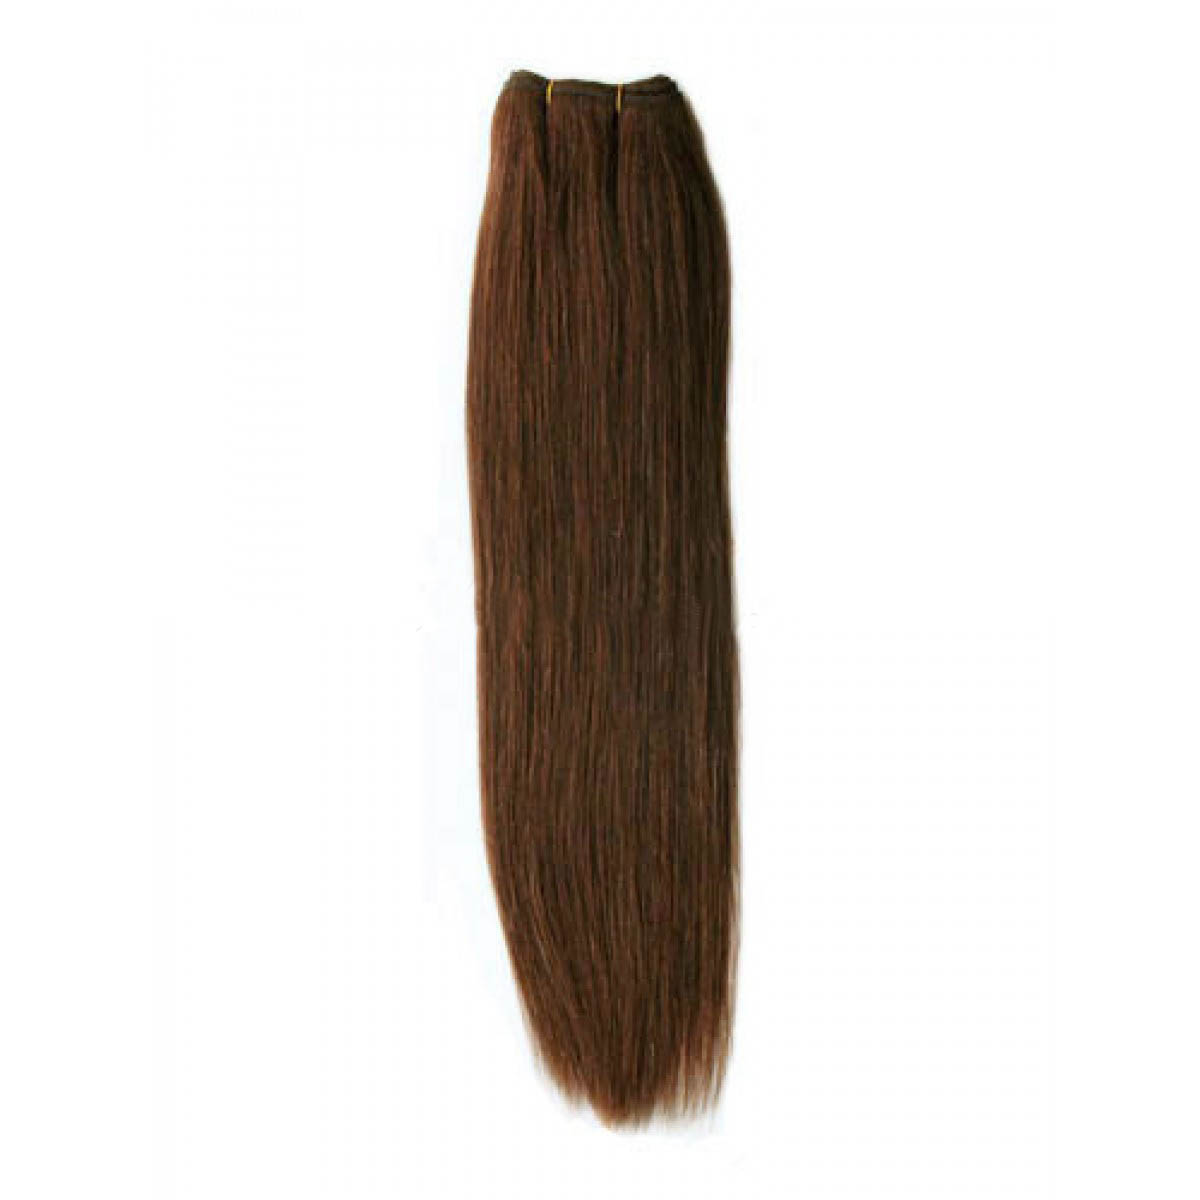 14 Inch #4 Medium Brown Straight Brazilian Virgin Hair Wefts no 1